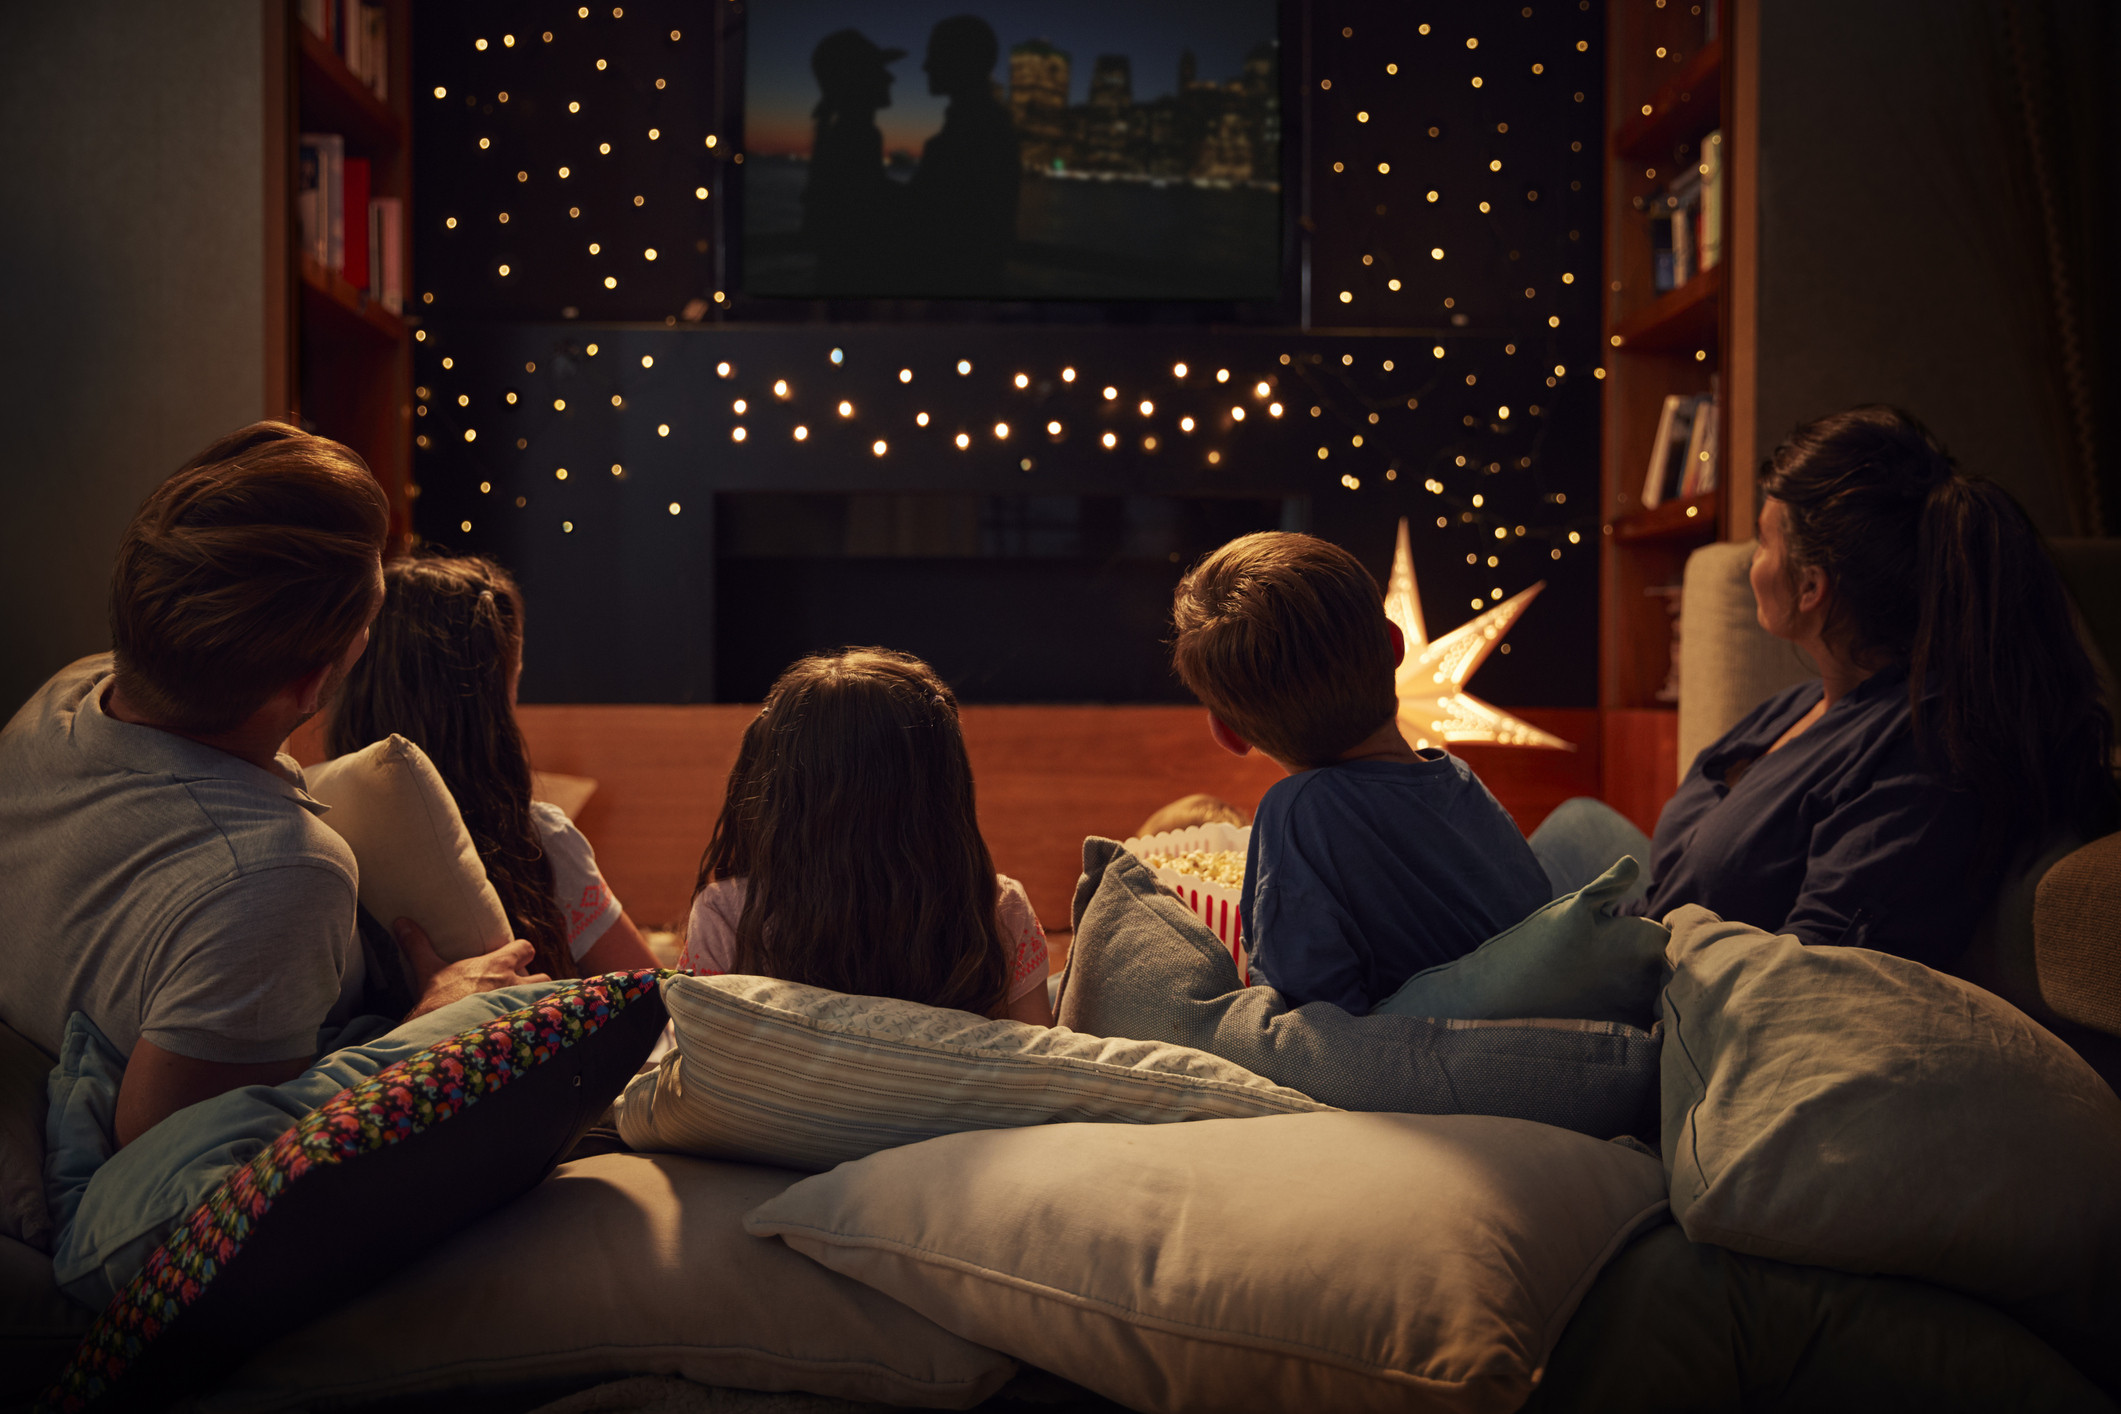 Family watching movie together in living room